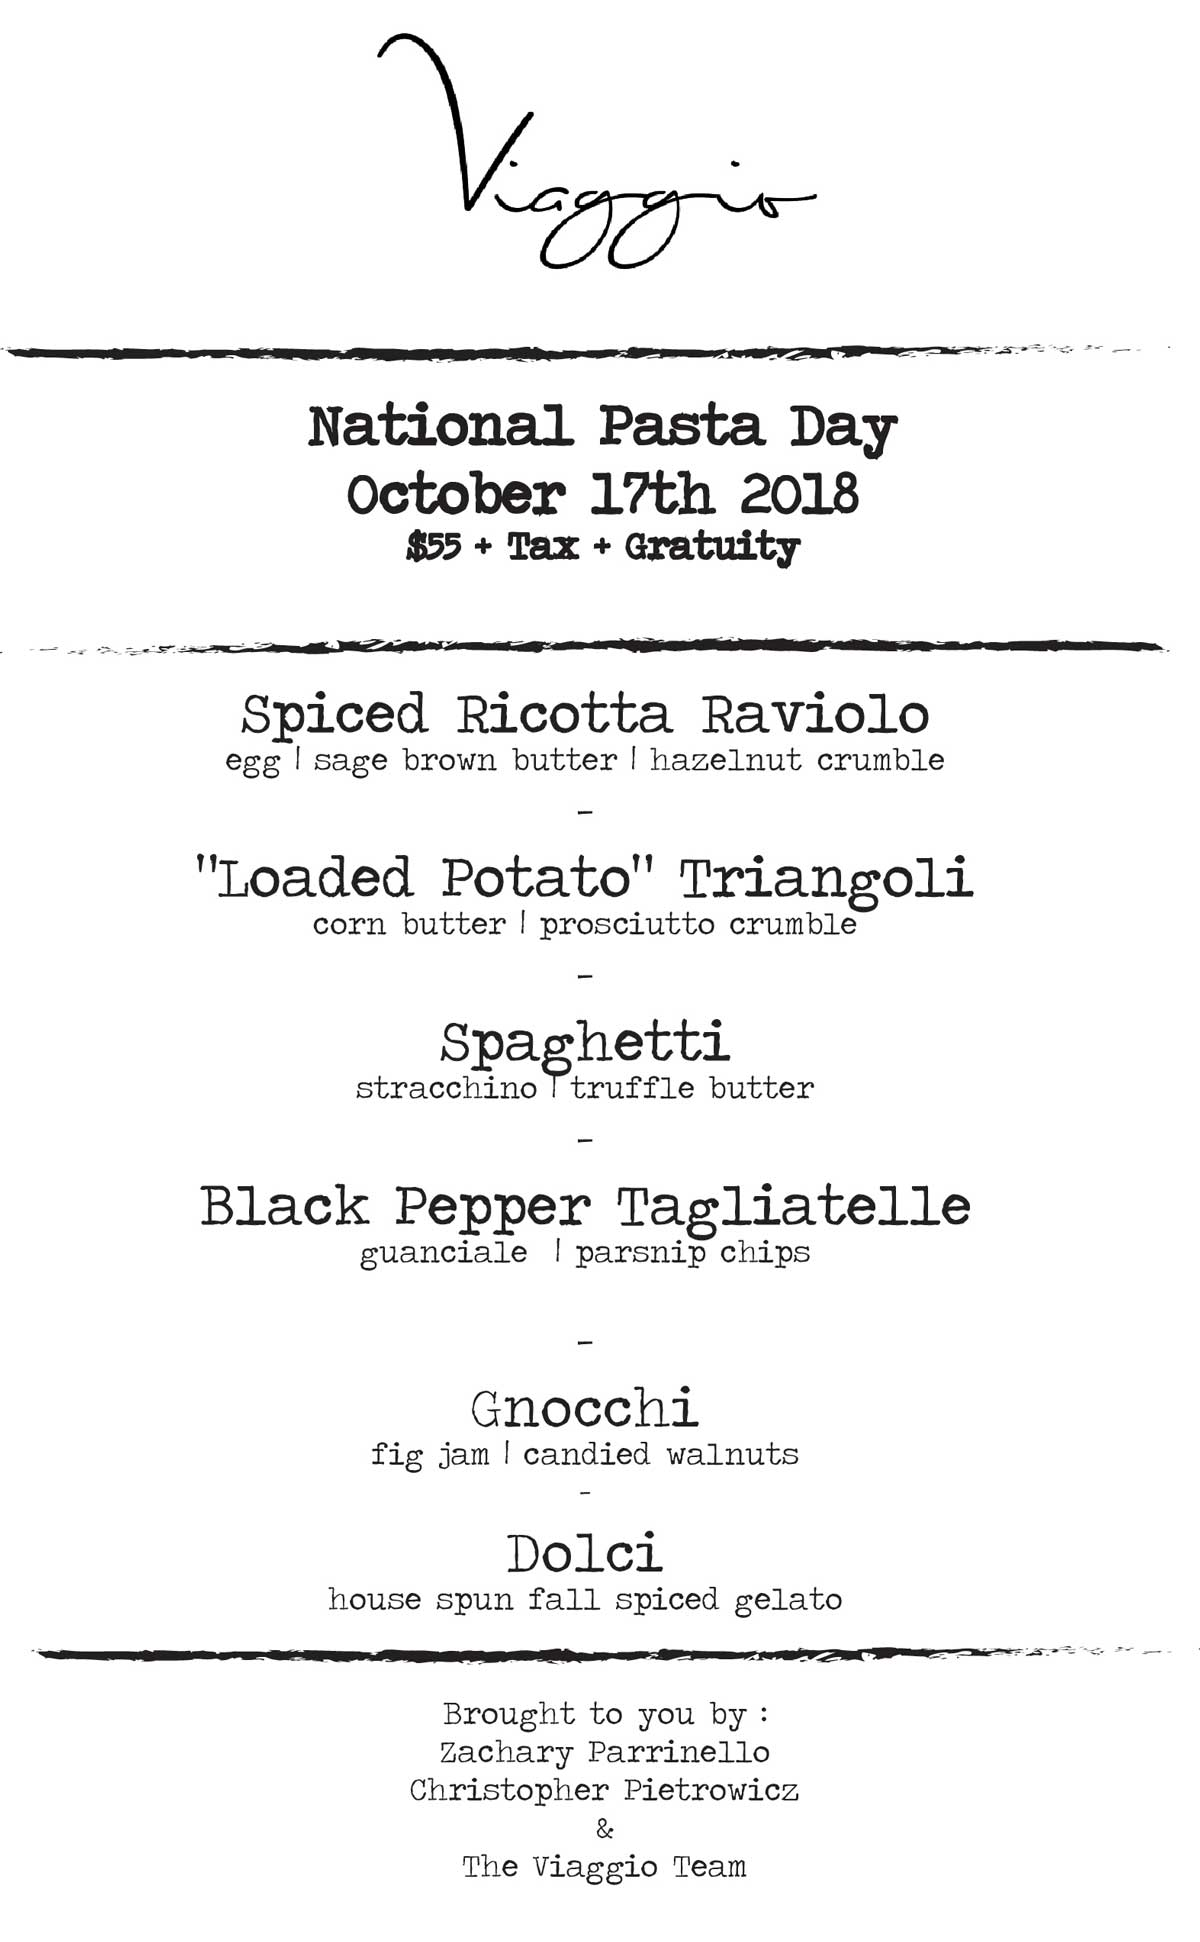 National Pasta Day at Viaggio Oct. 17